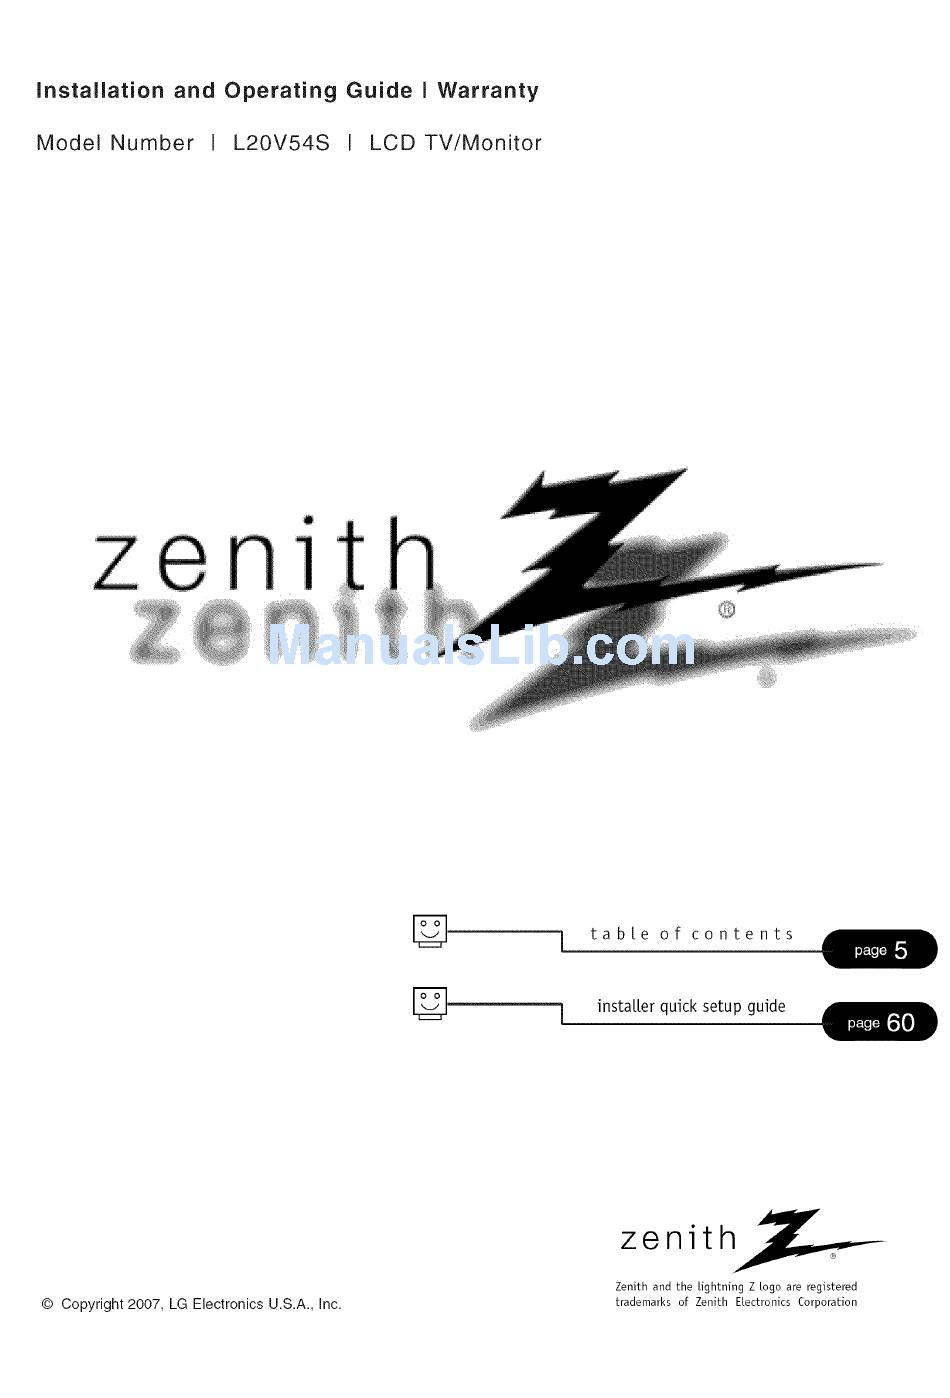 ZENITH L20V54S INSTALLATION AND OPERATING MANUAL Pdf